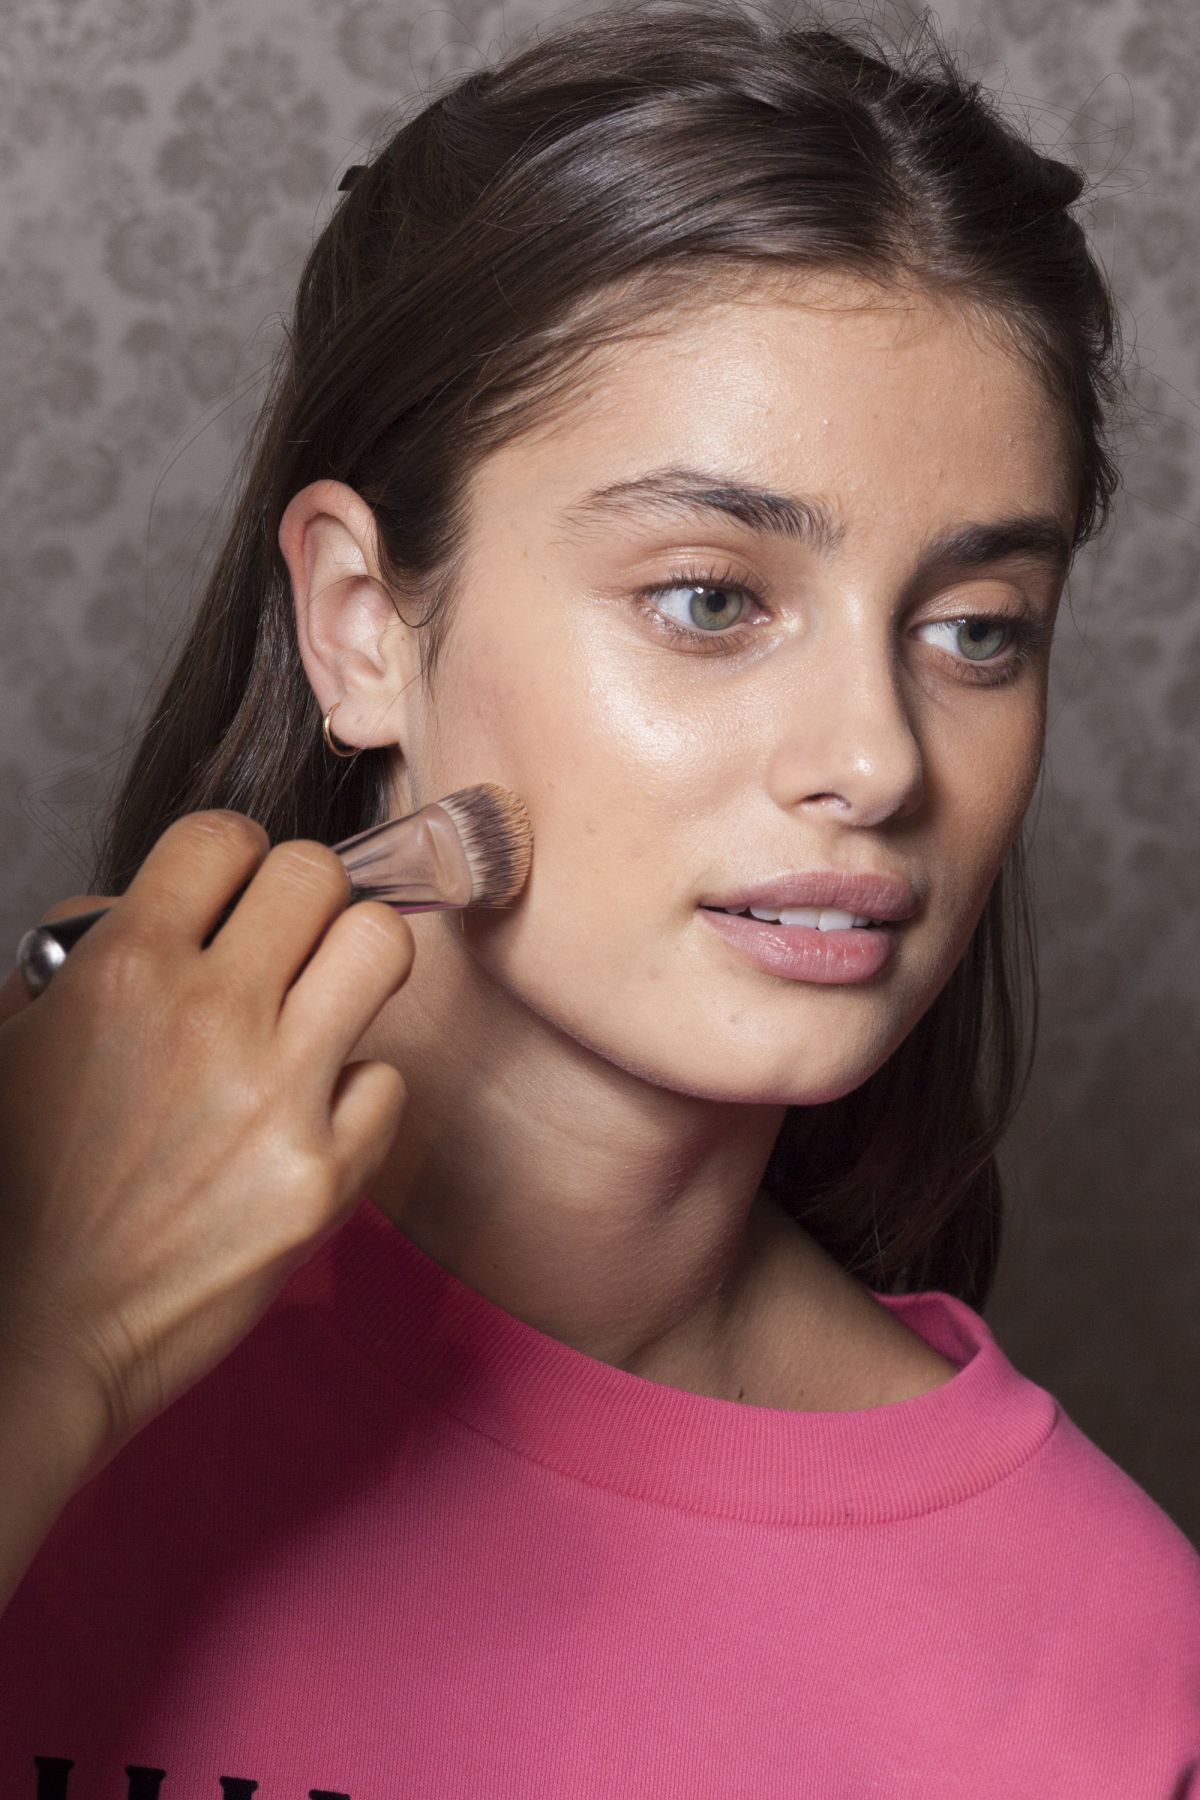 Taylor marie hill at philosophy springsummer 2018 backstage celebzz taylor marie hill at philosophy springsummer 2018 backstage altavistaventures Choice Image